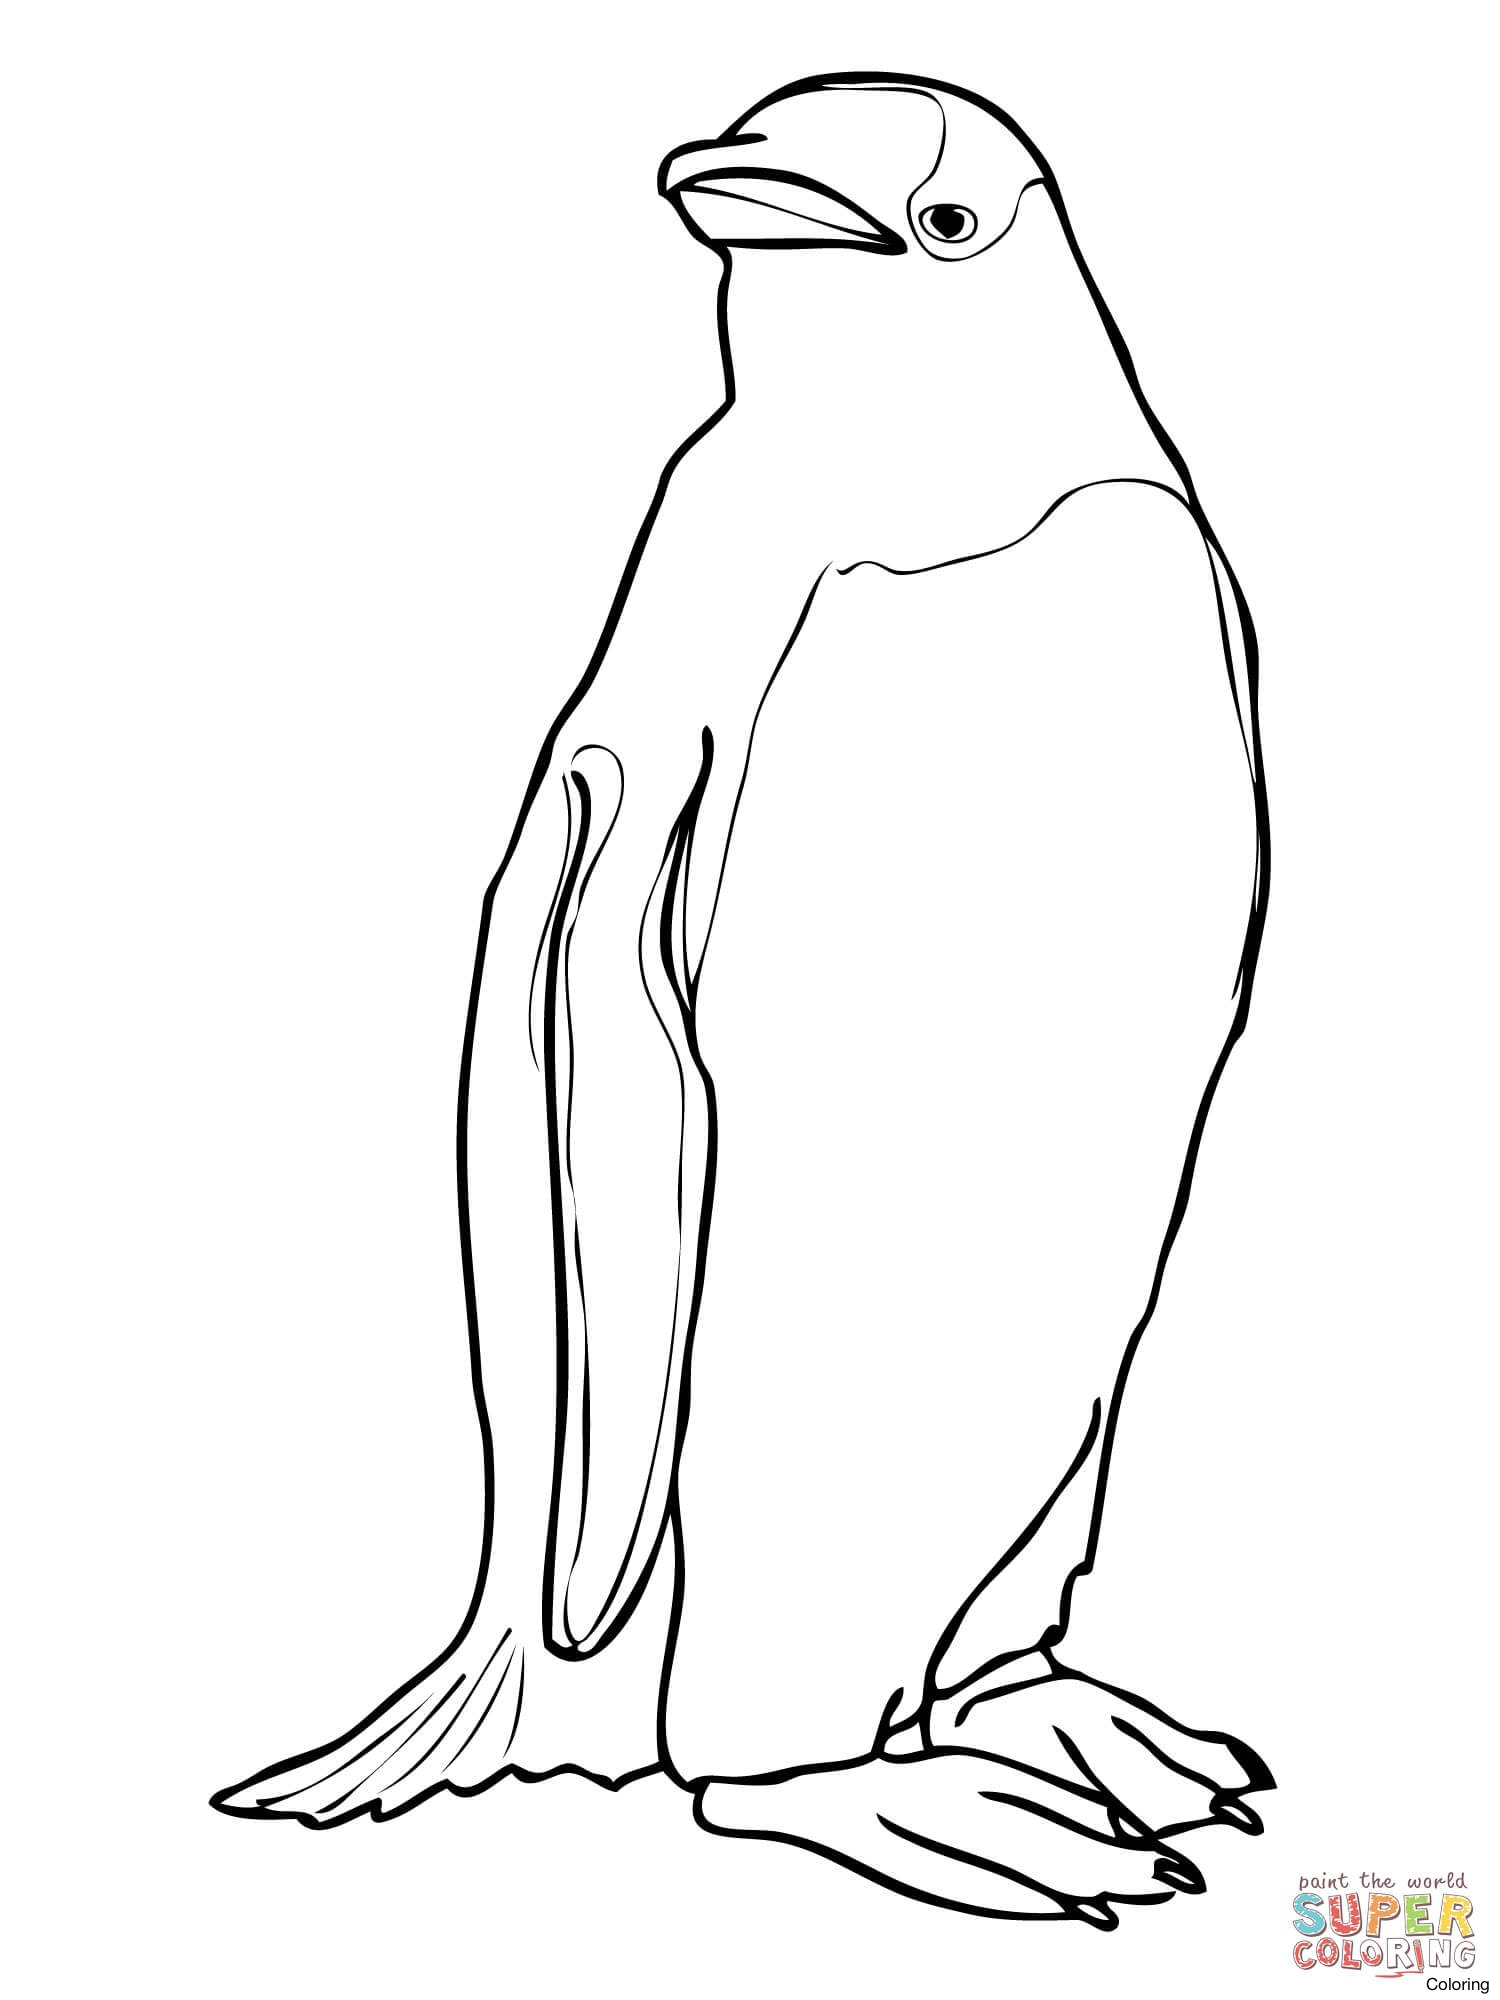 1500x2000 Skiing Penguin Coloring Page Zlm Penguins Sheets 16f 321